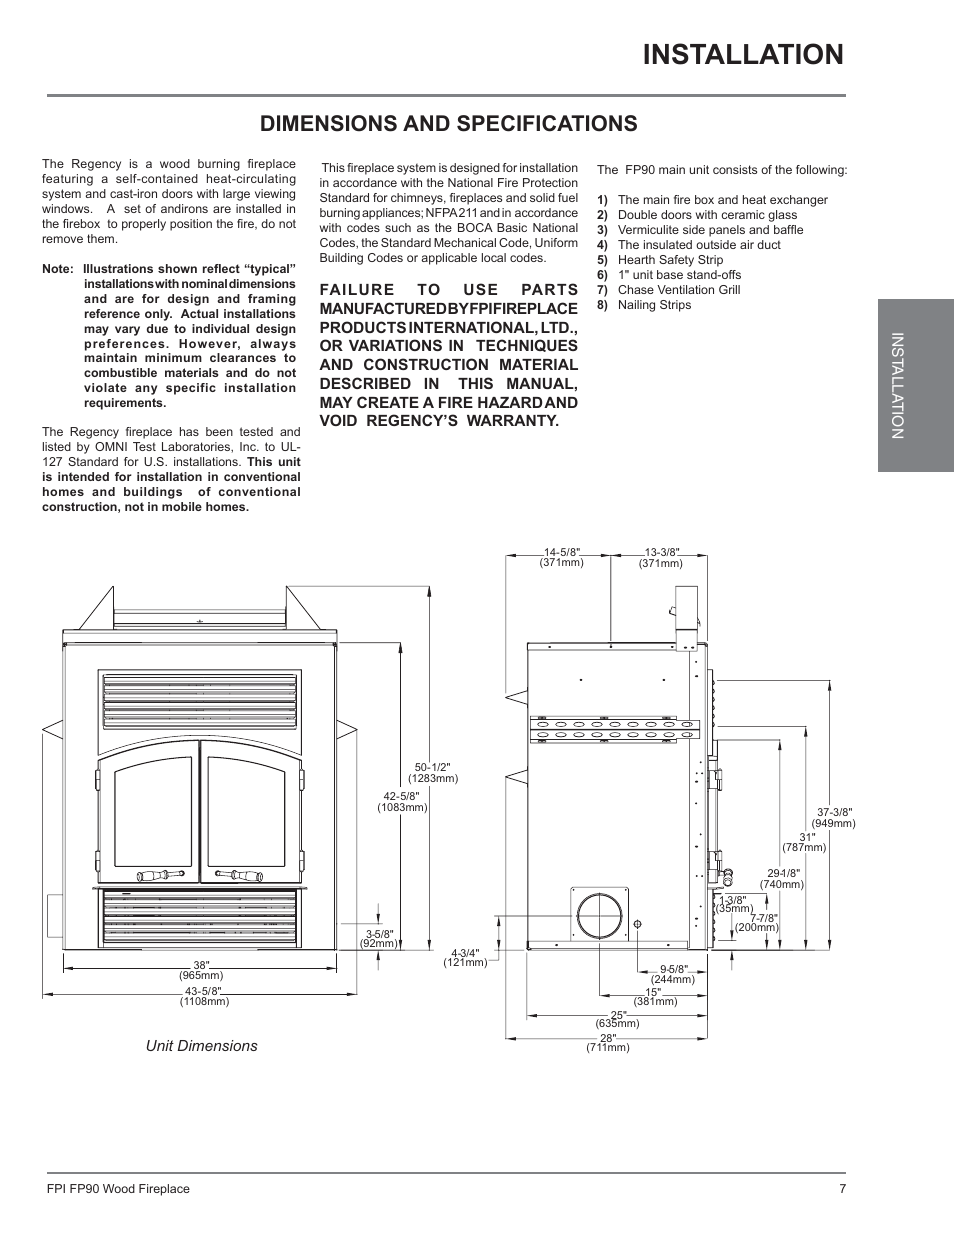 Excalibur Regency Fireplace Wiring Diagram Electrical Diagrams Electric Installation Dimensions And Specifications Ex90 Schematic